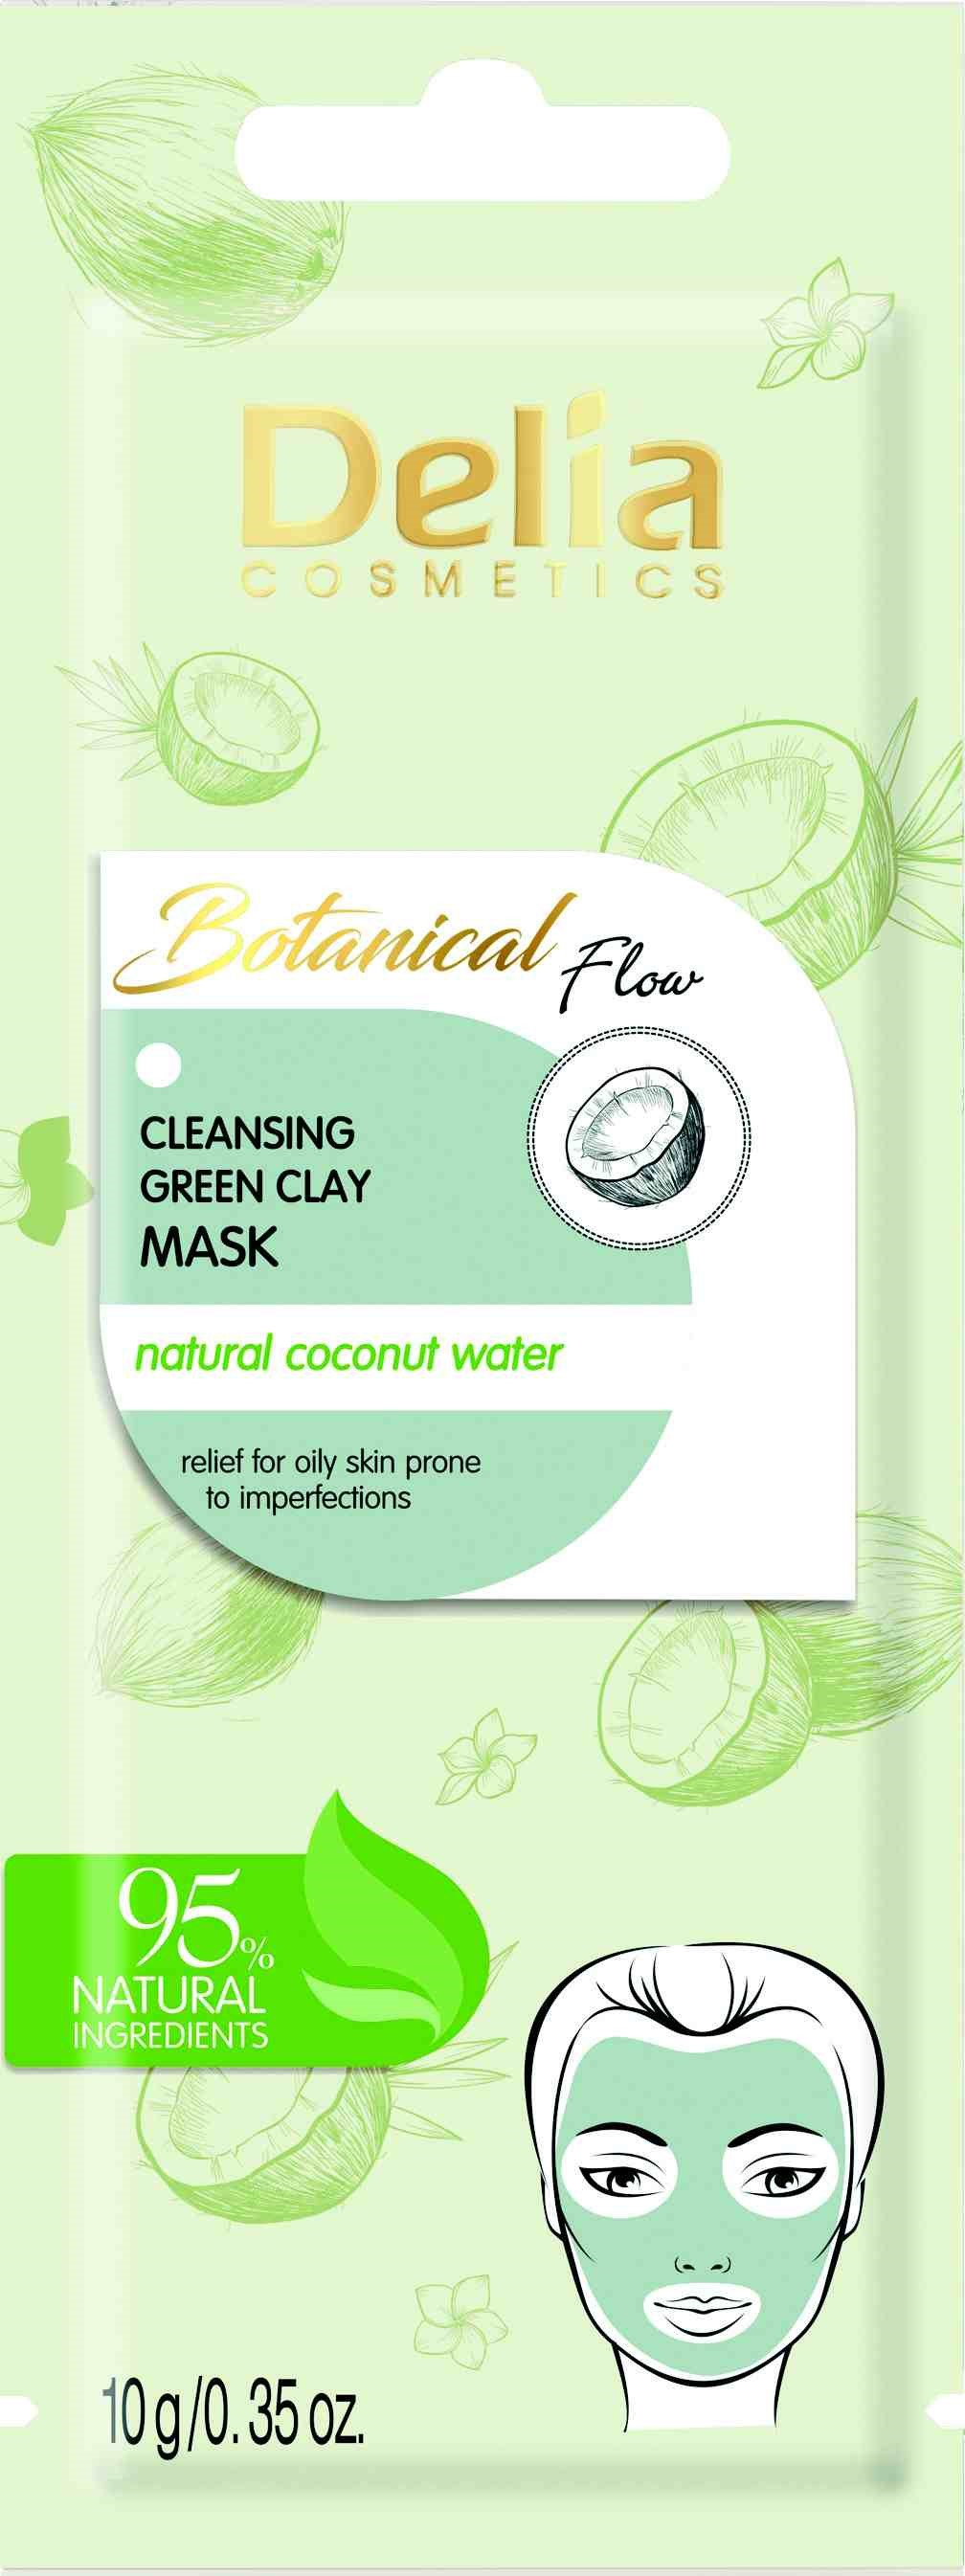 Delia Botanical Flow Cleansing Green Clay Mask